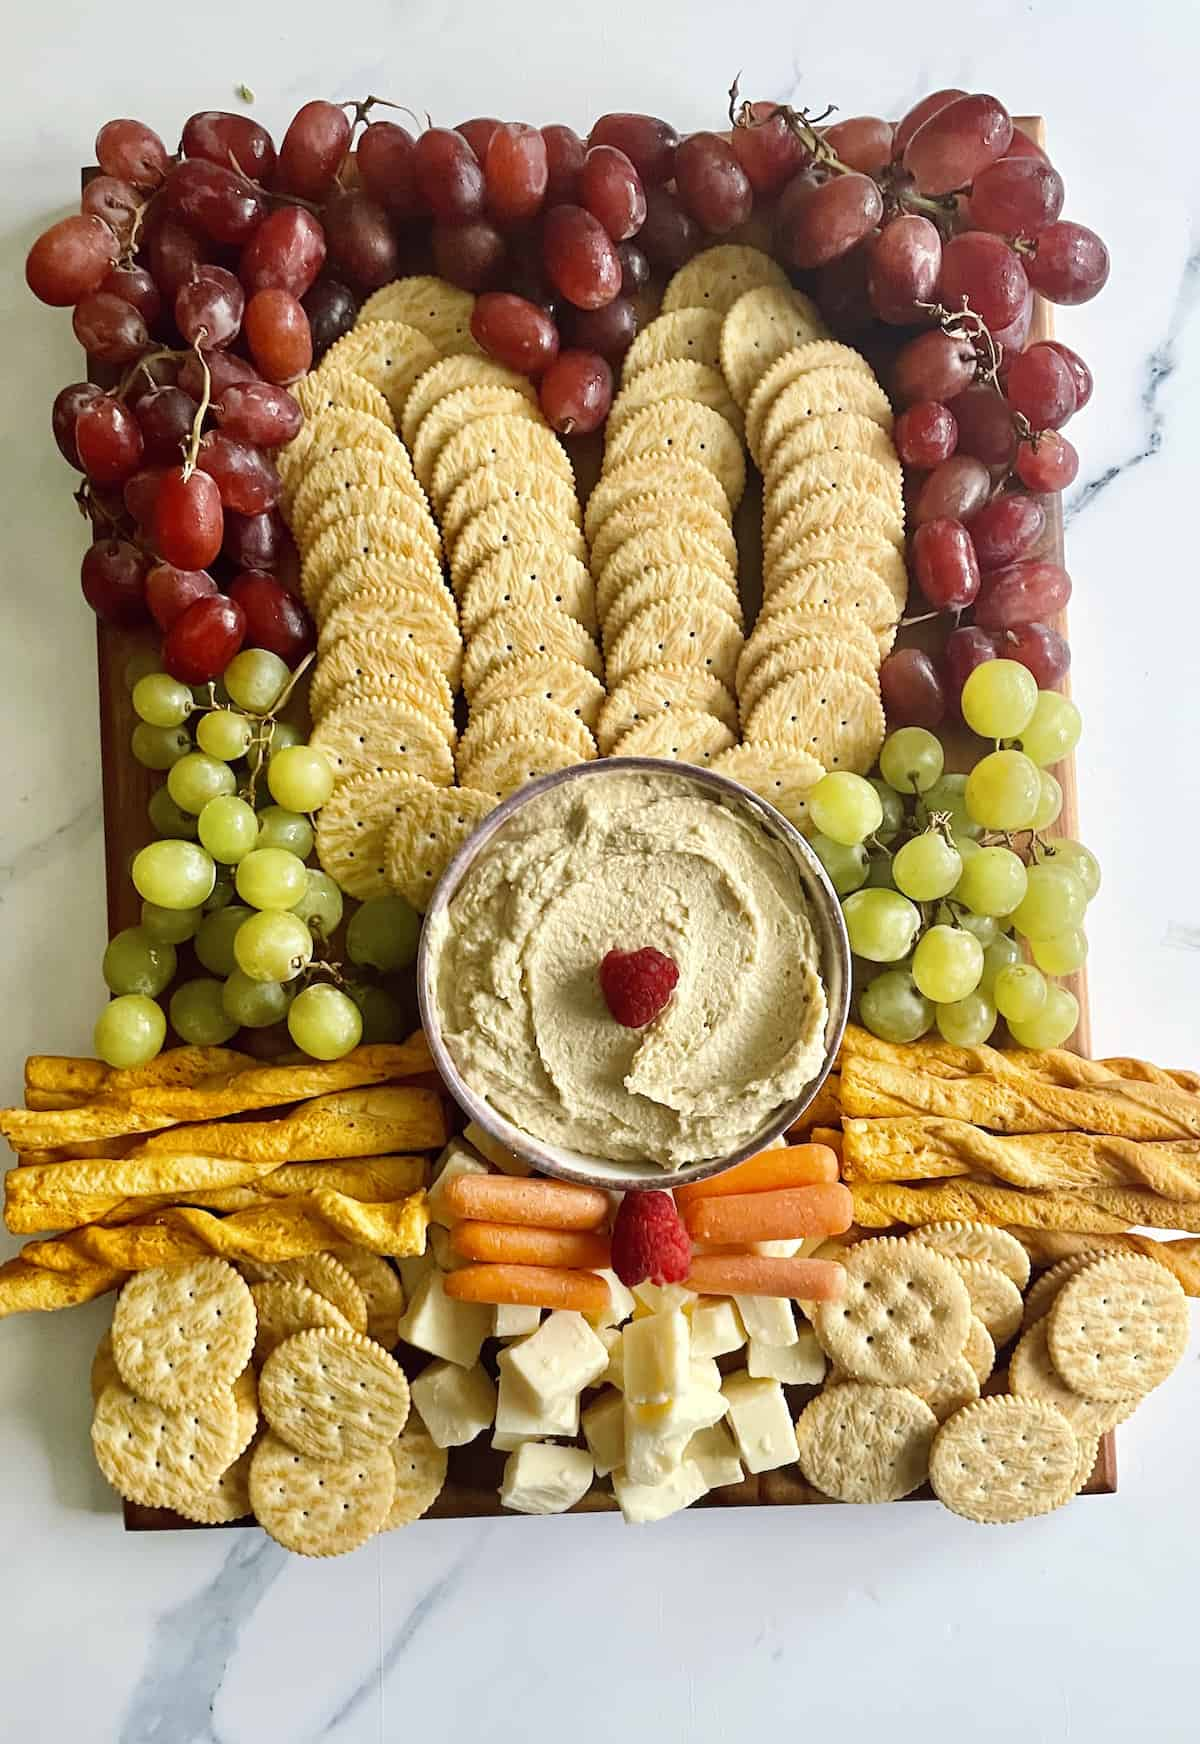 A bunny shaped fruit, veggie and cracker tray